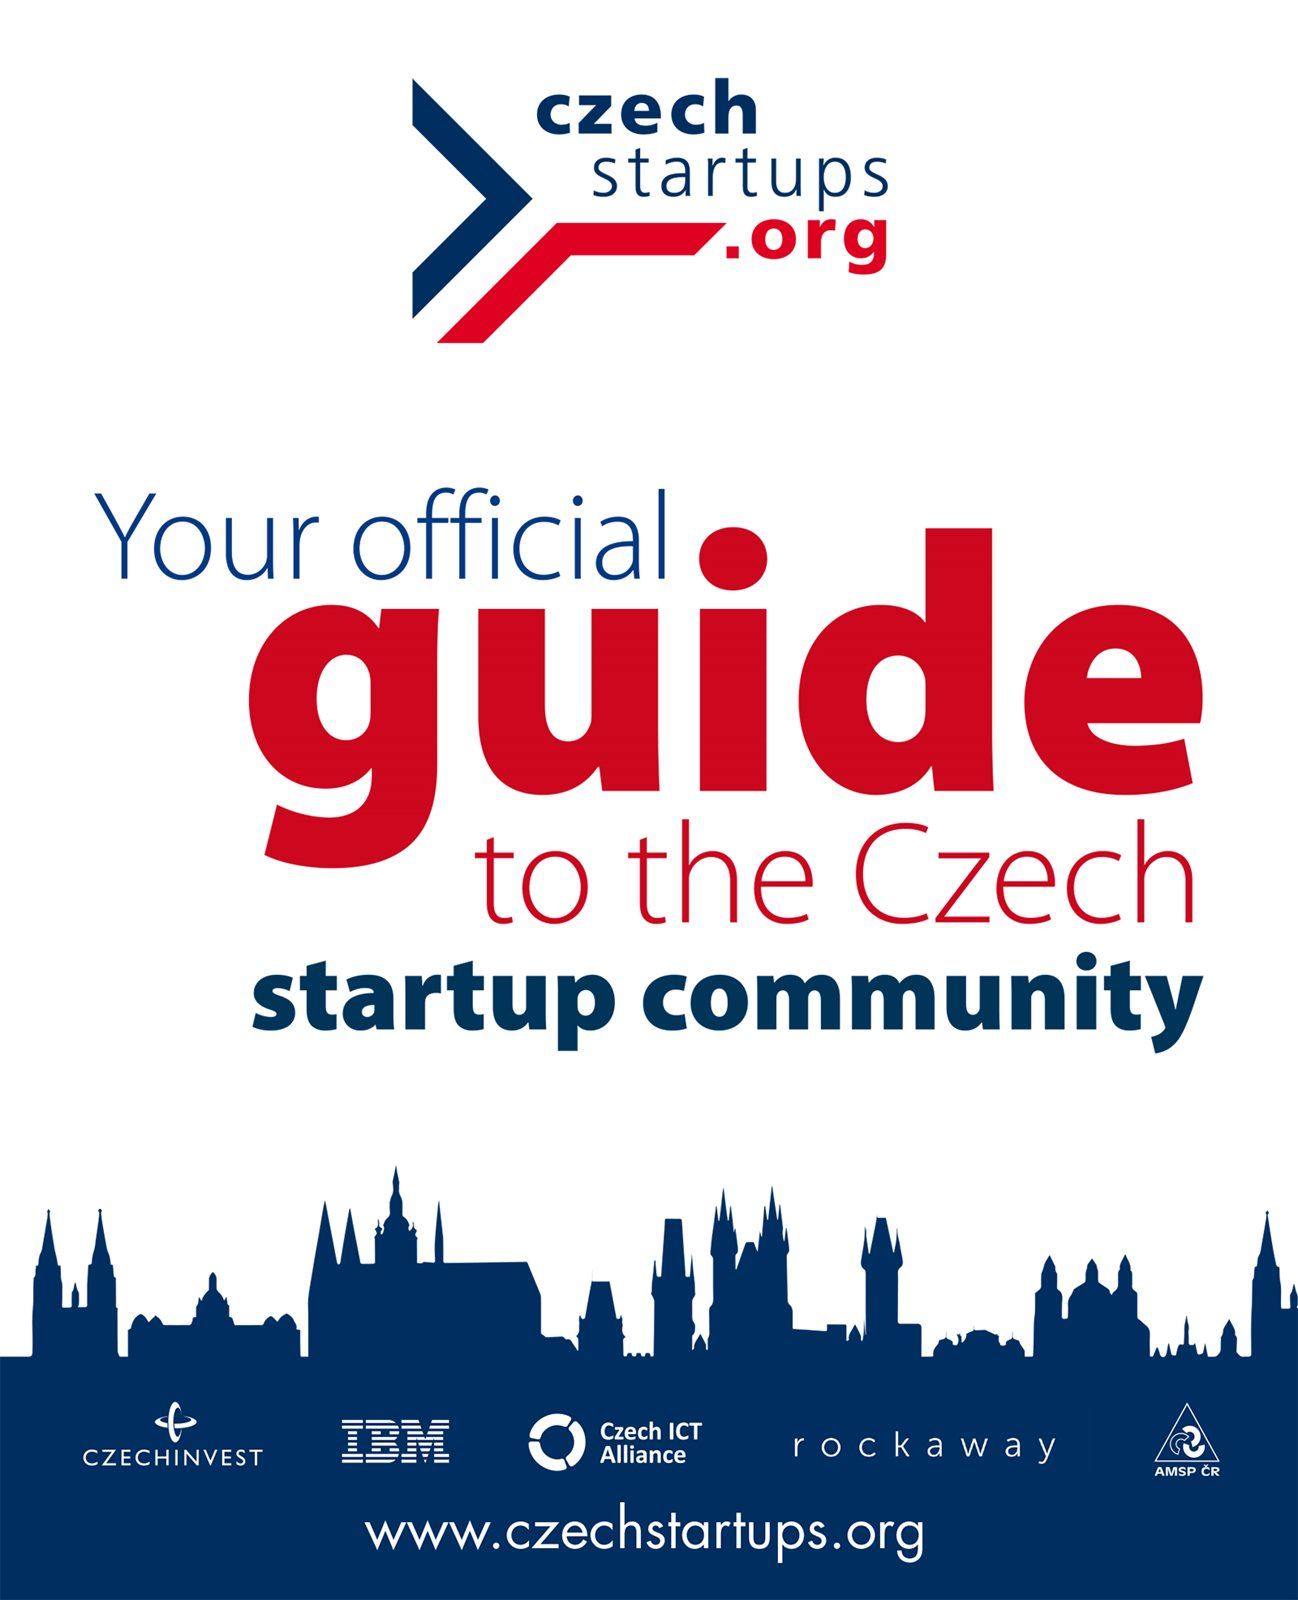 Czechstartups.org attachment